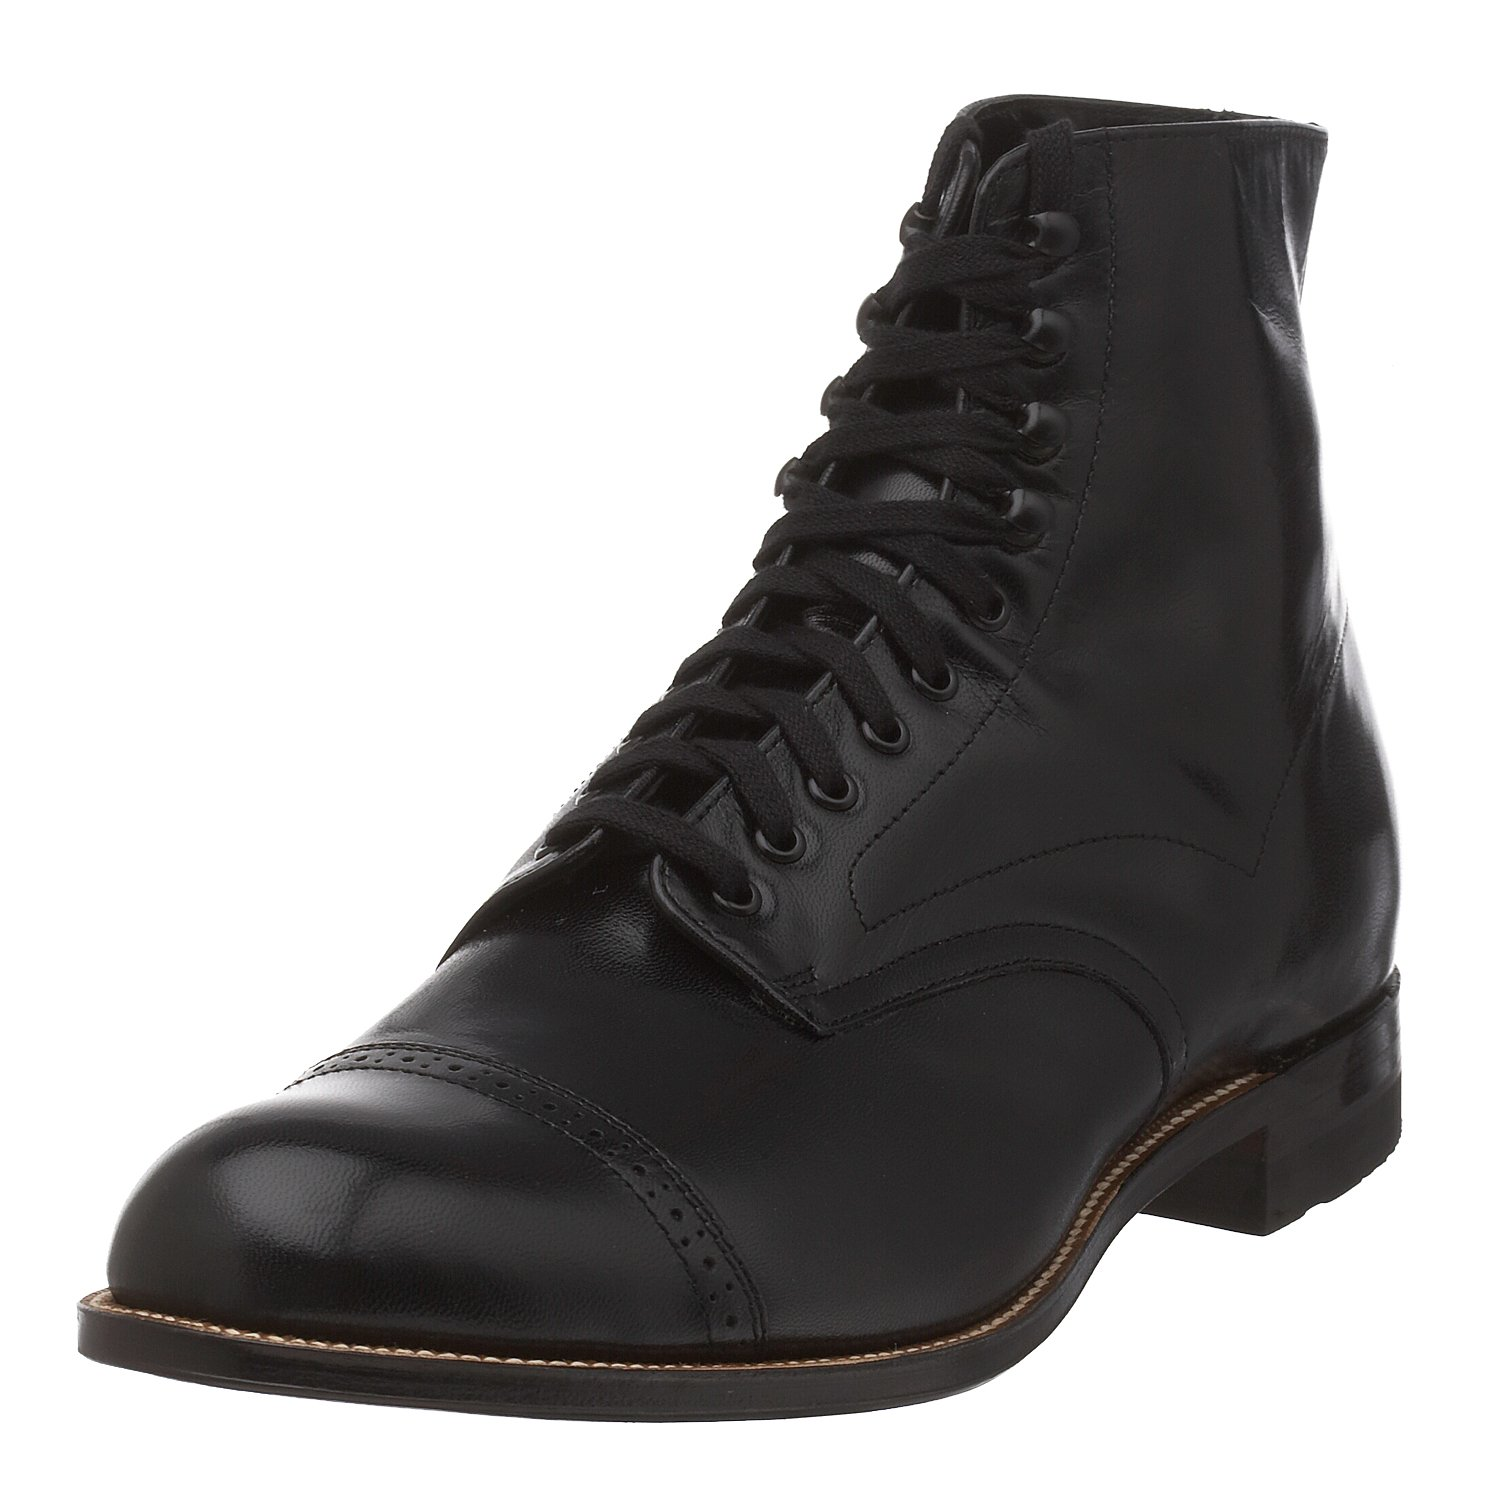 Stacy Adams Men's Victorian Boots and Shoes UK - Stacy Adams Mens Madison Cap Toe Boot �96.11 AT vintagedancer.com